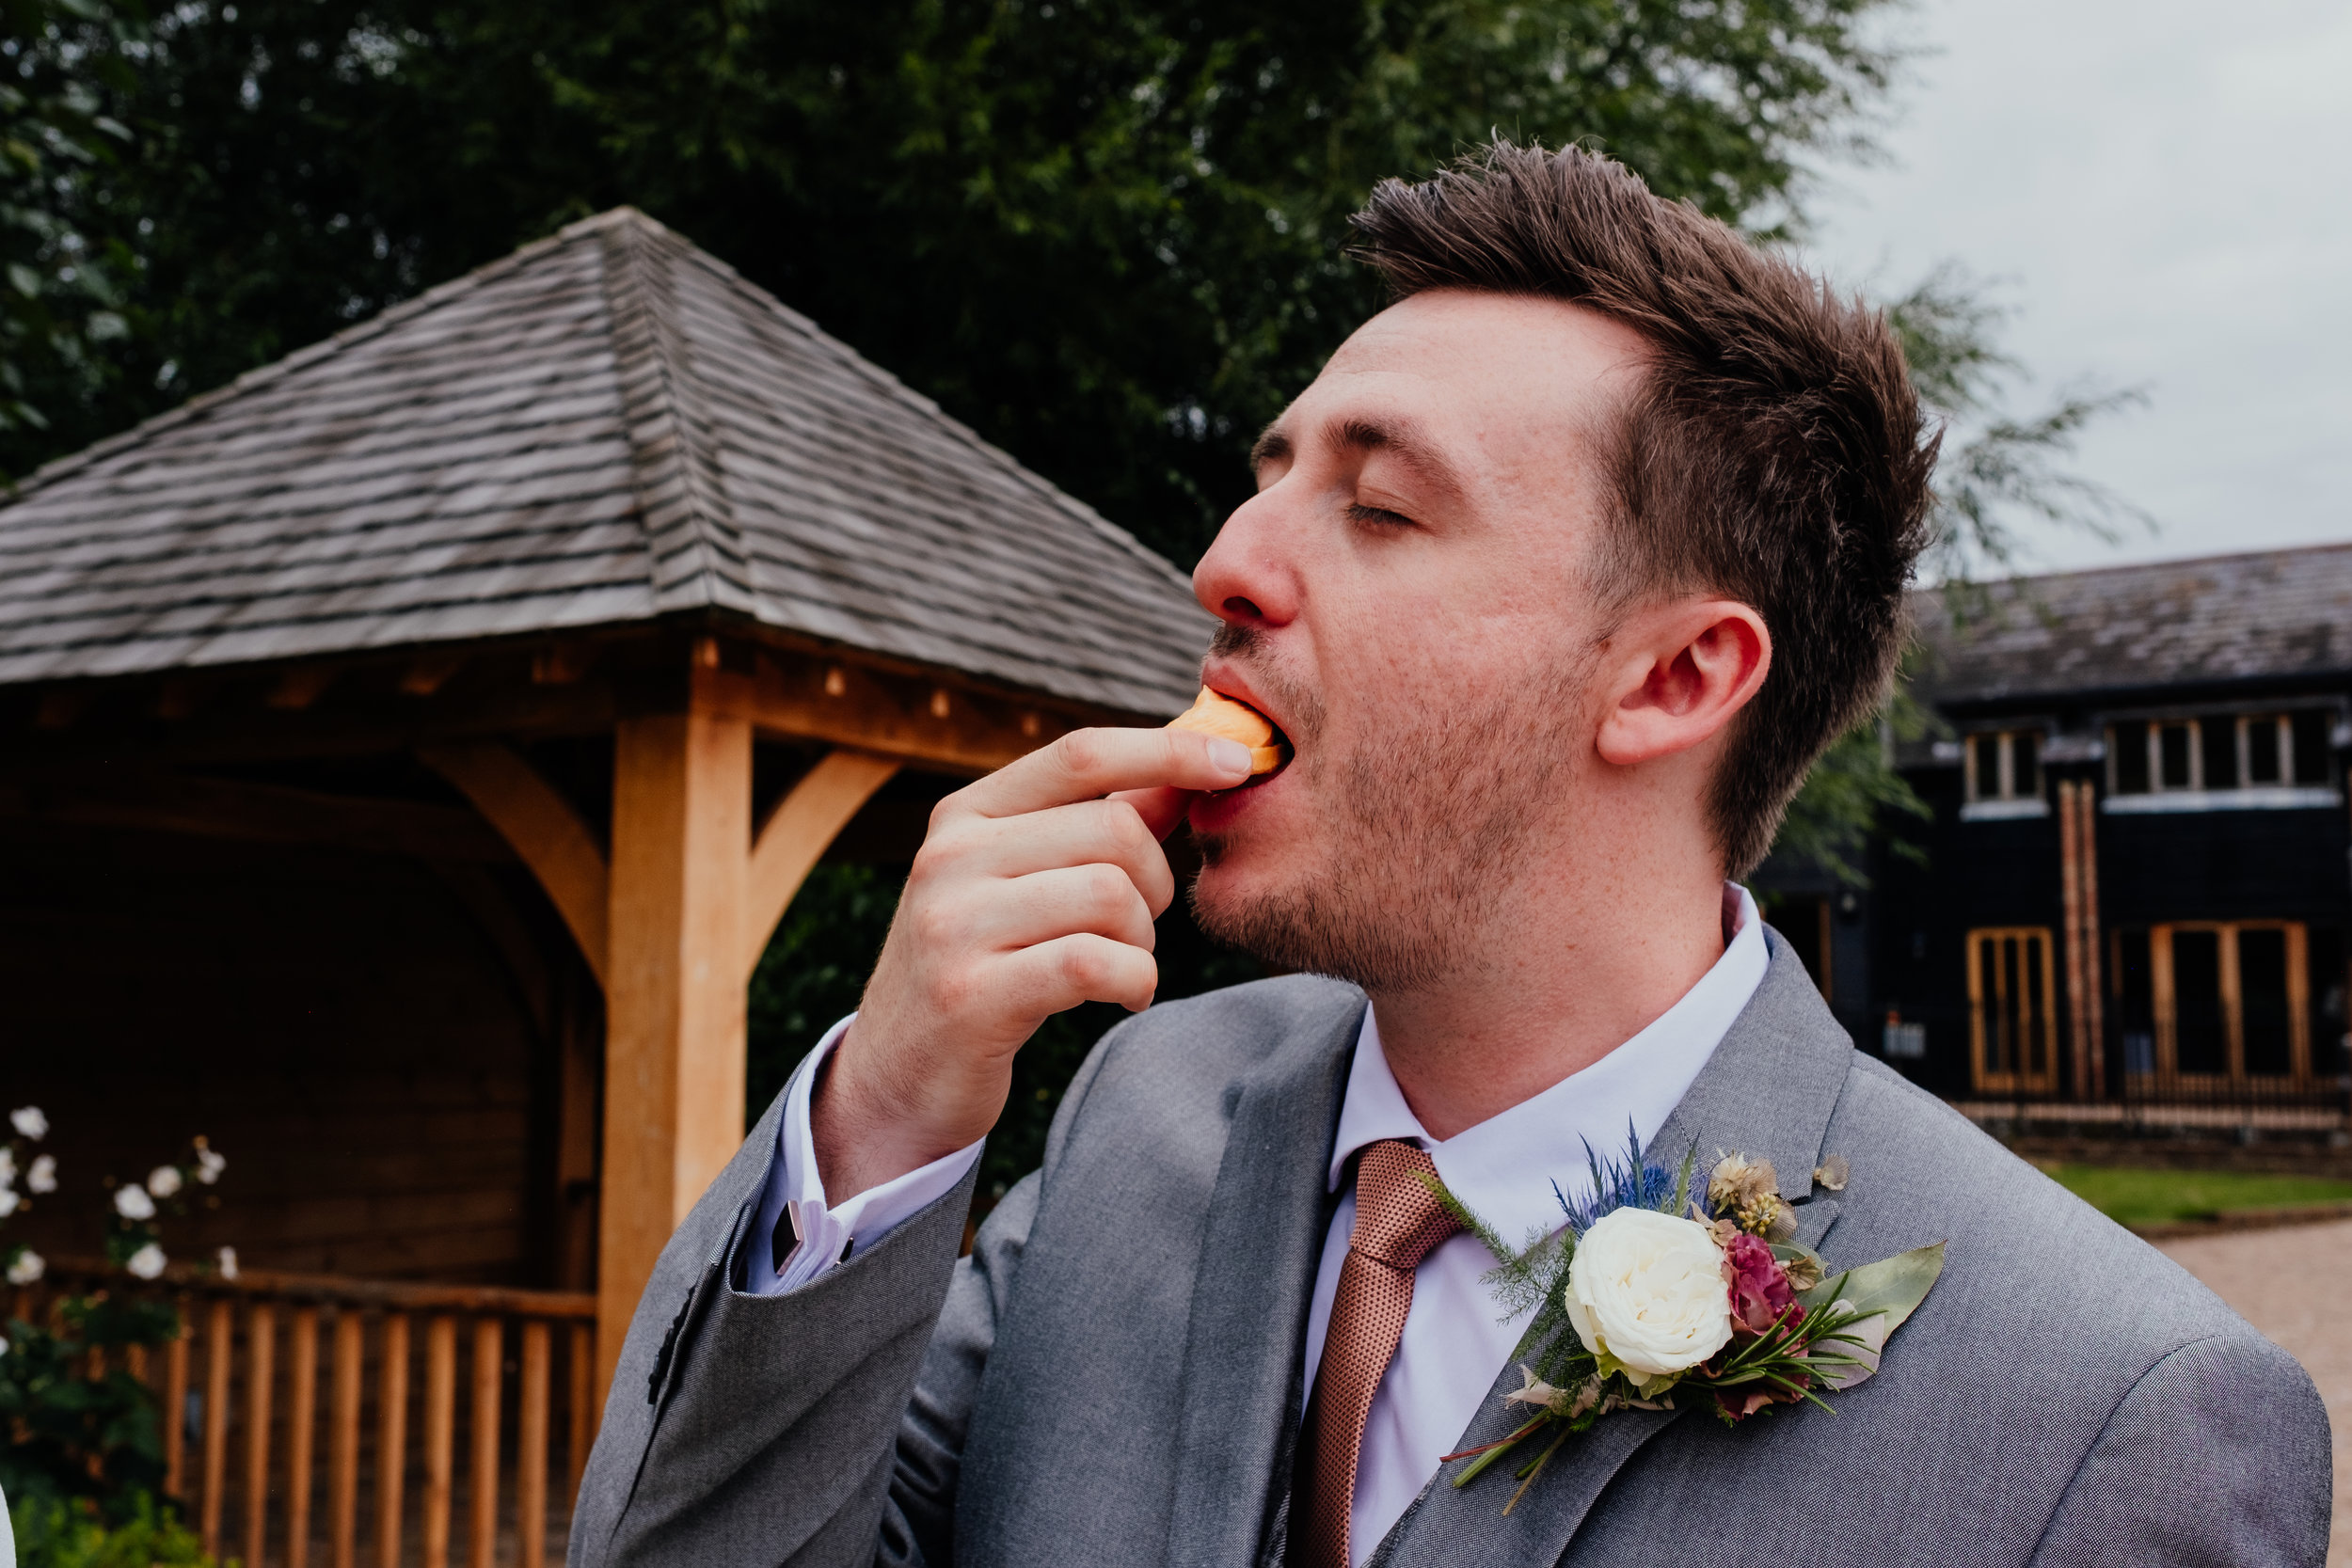 Groom eating canapés